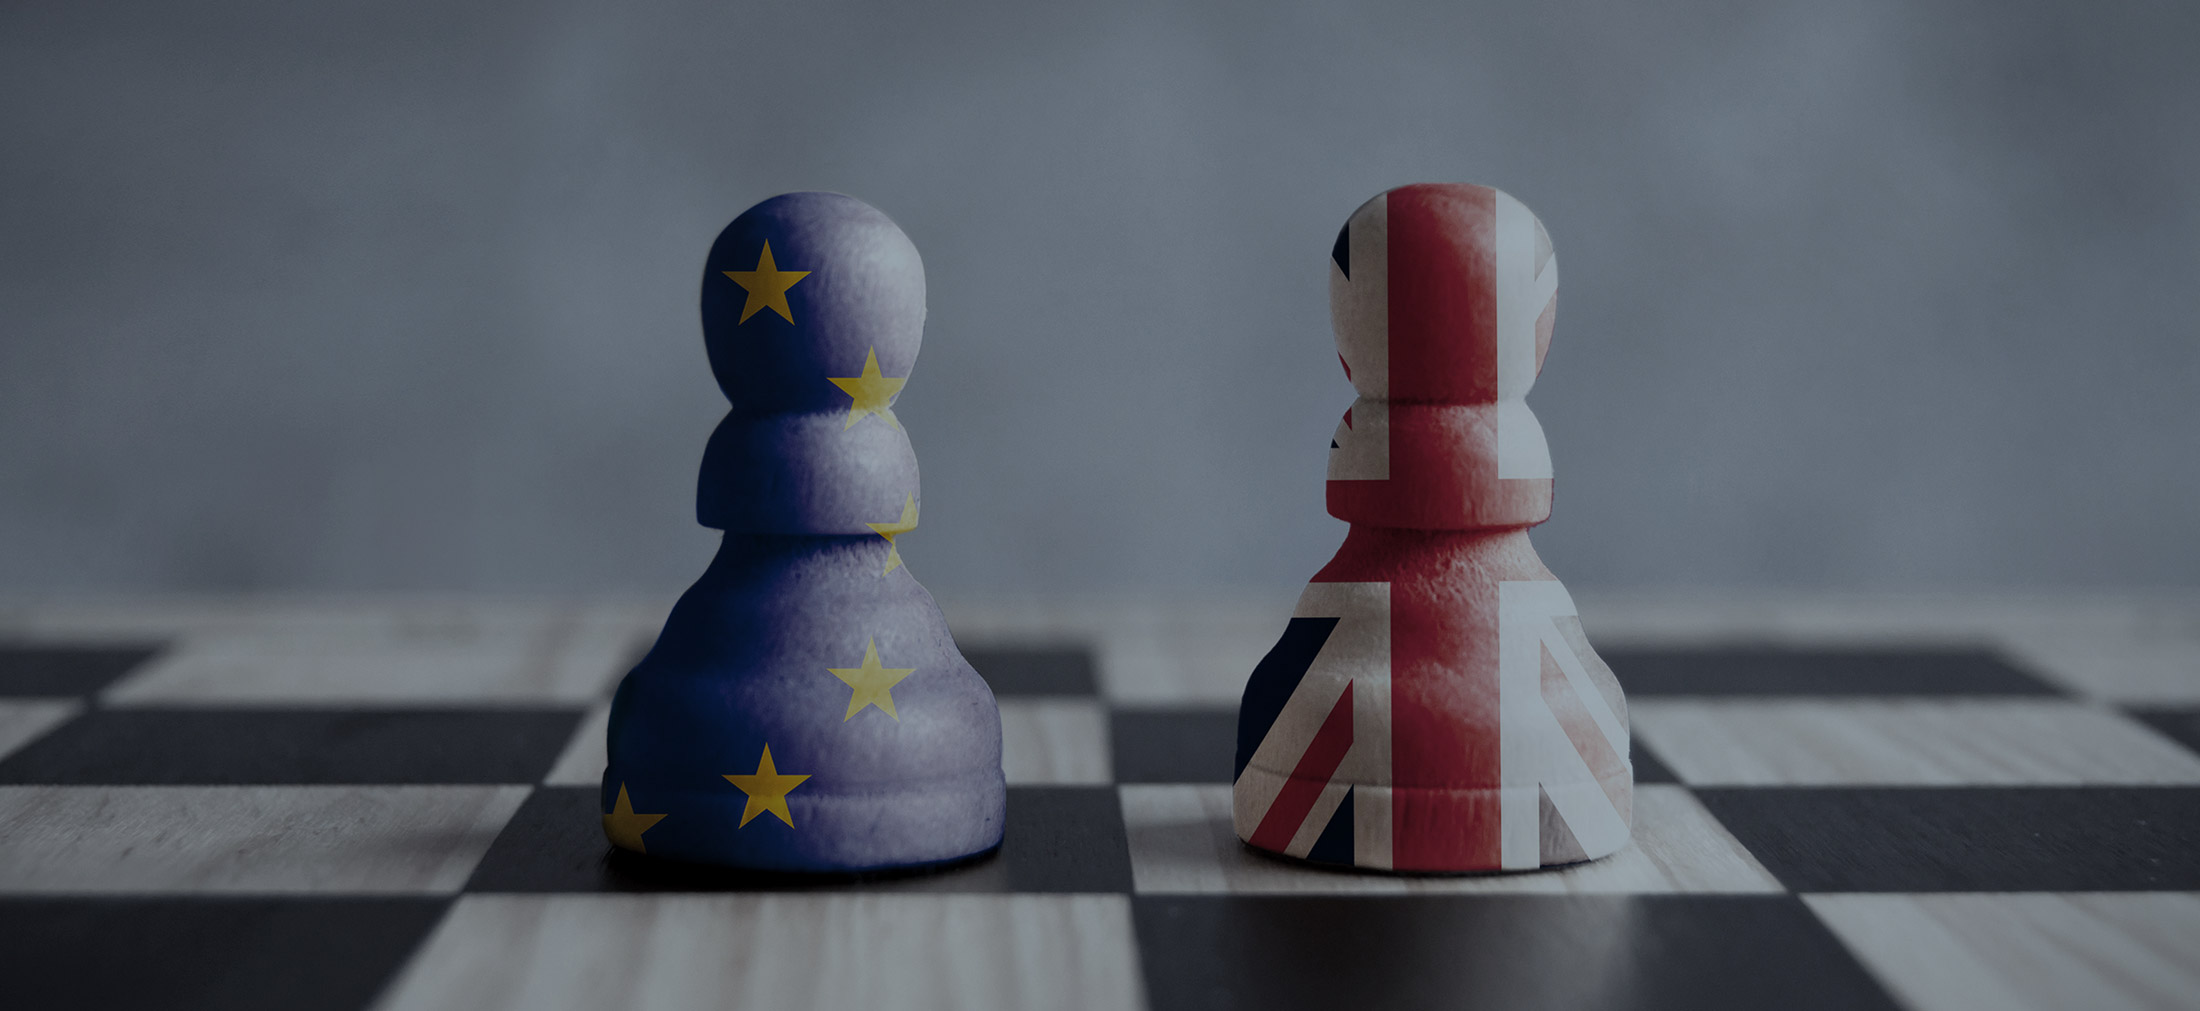 How will a No-Deal Brexit effect UK Property Investment? Are There Any Positives